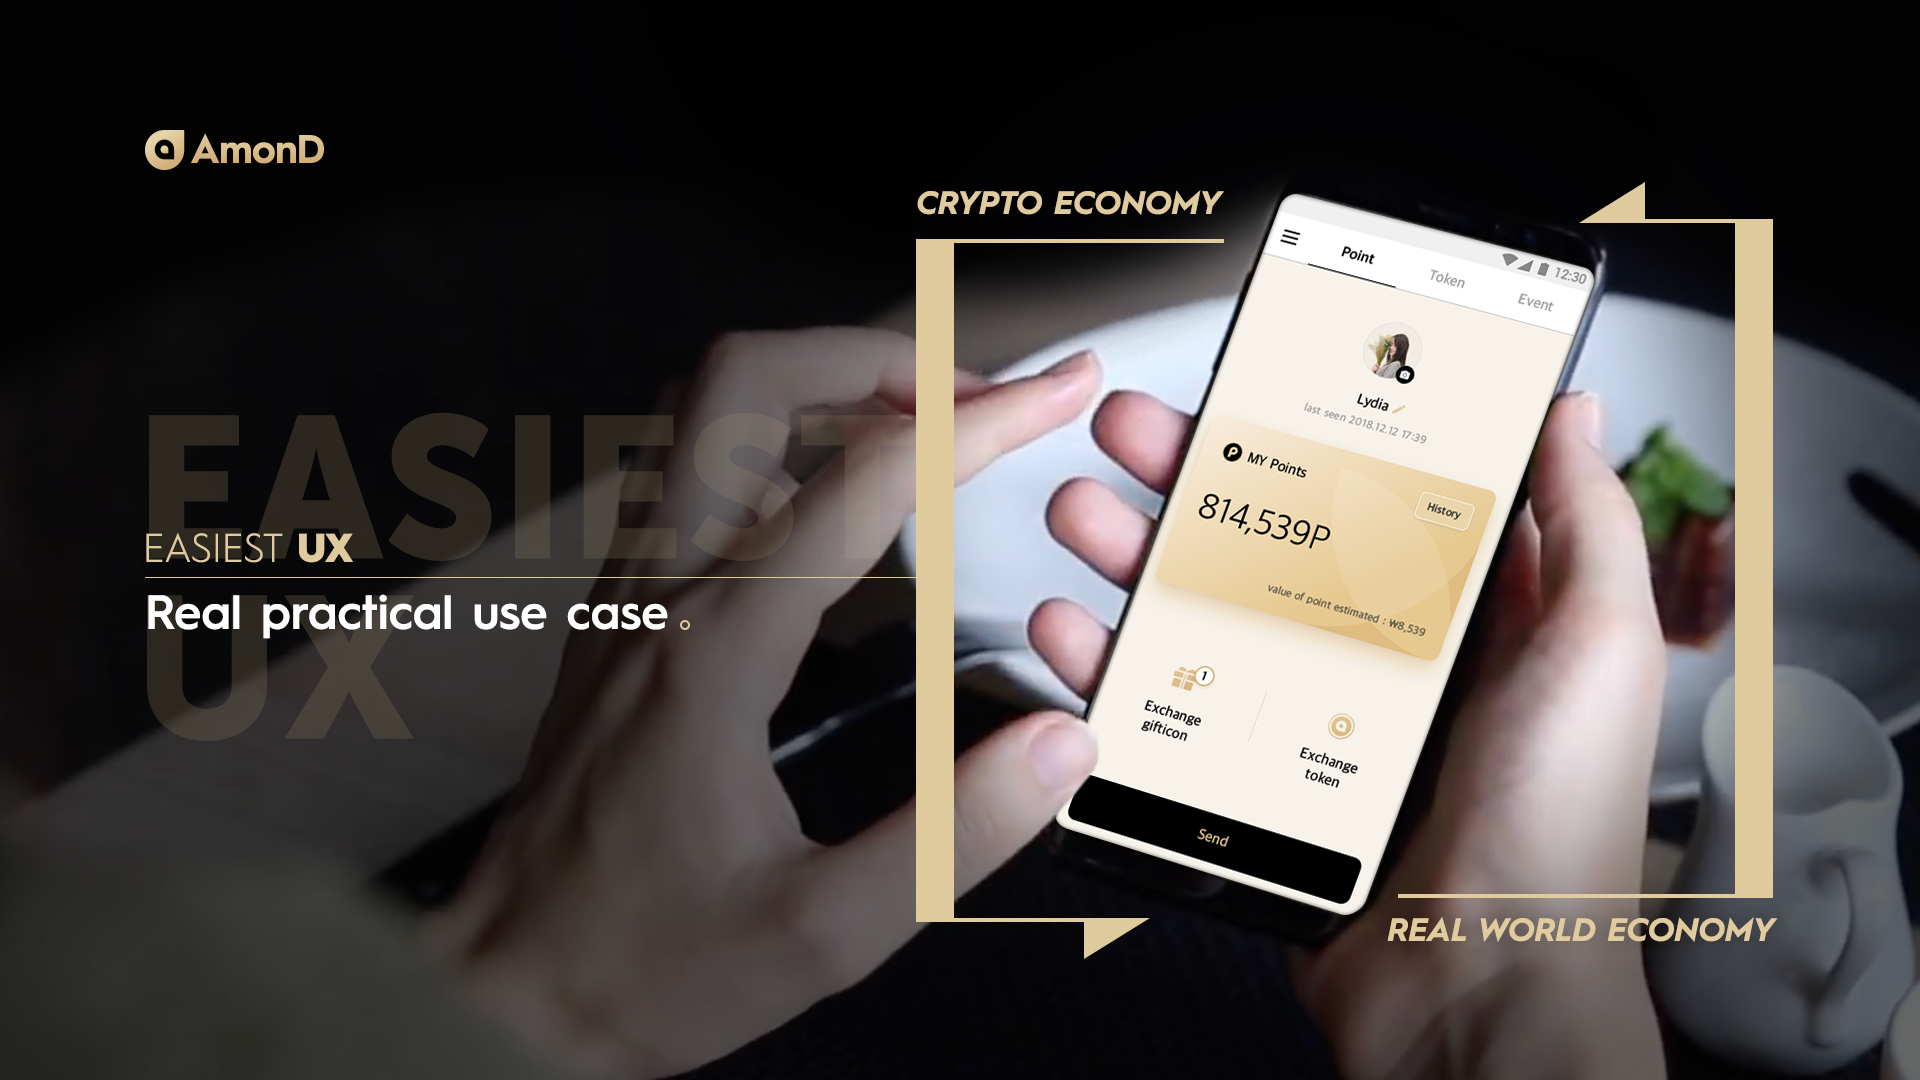 Token and Wallets - AmonD token focuses on compatibility and uses Etherium ERC 20 (Ethereum Request For Comments) which is the most popular token platform.AmonD wallet provides the highest level of security by adopting BitGo solution.